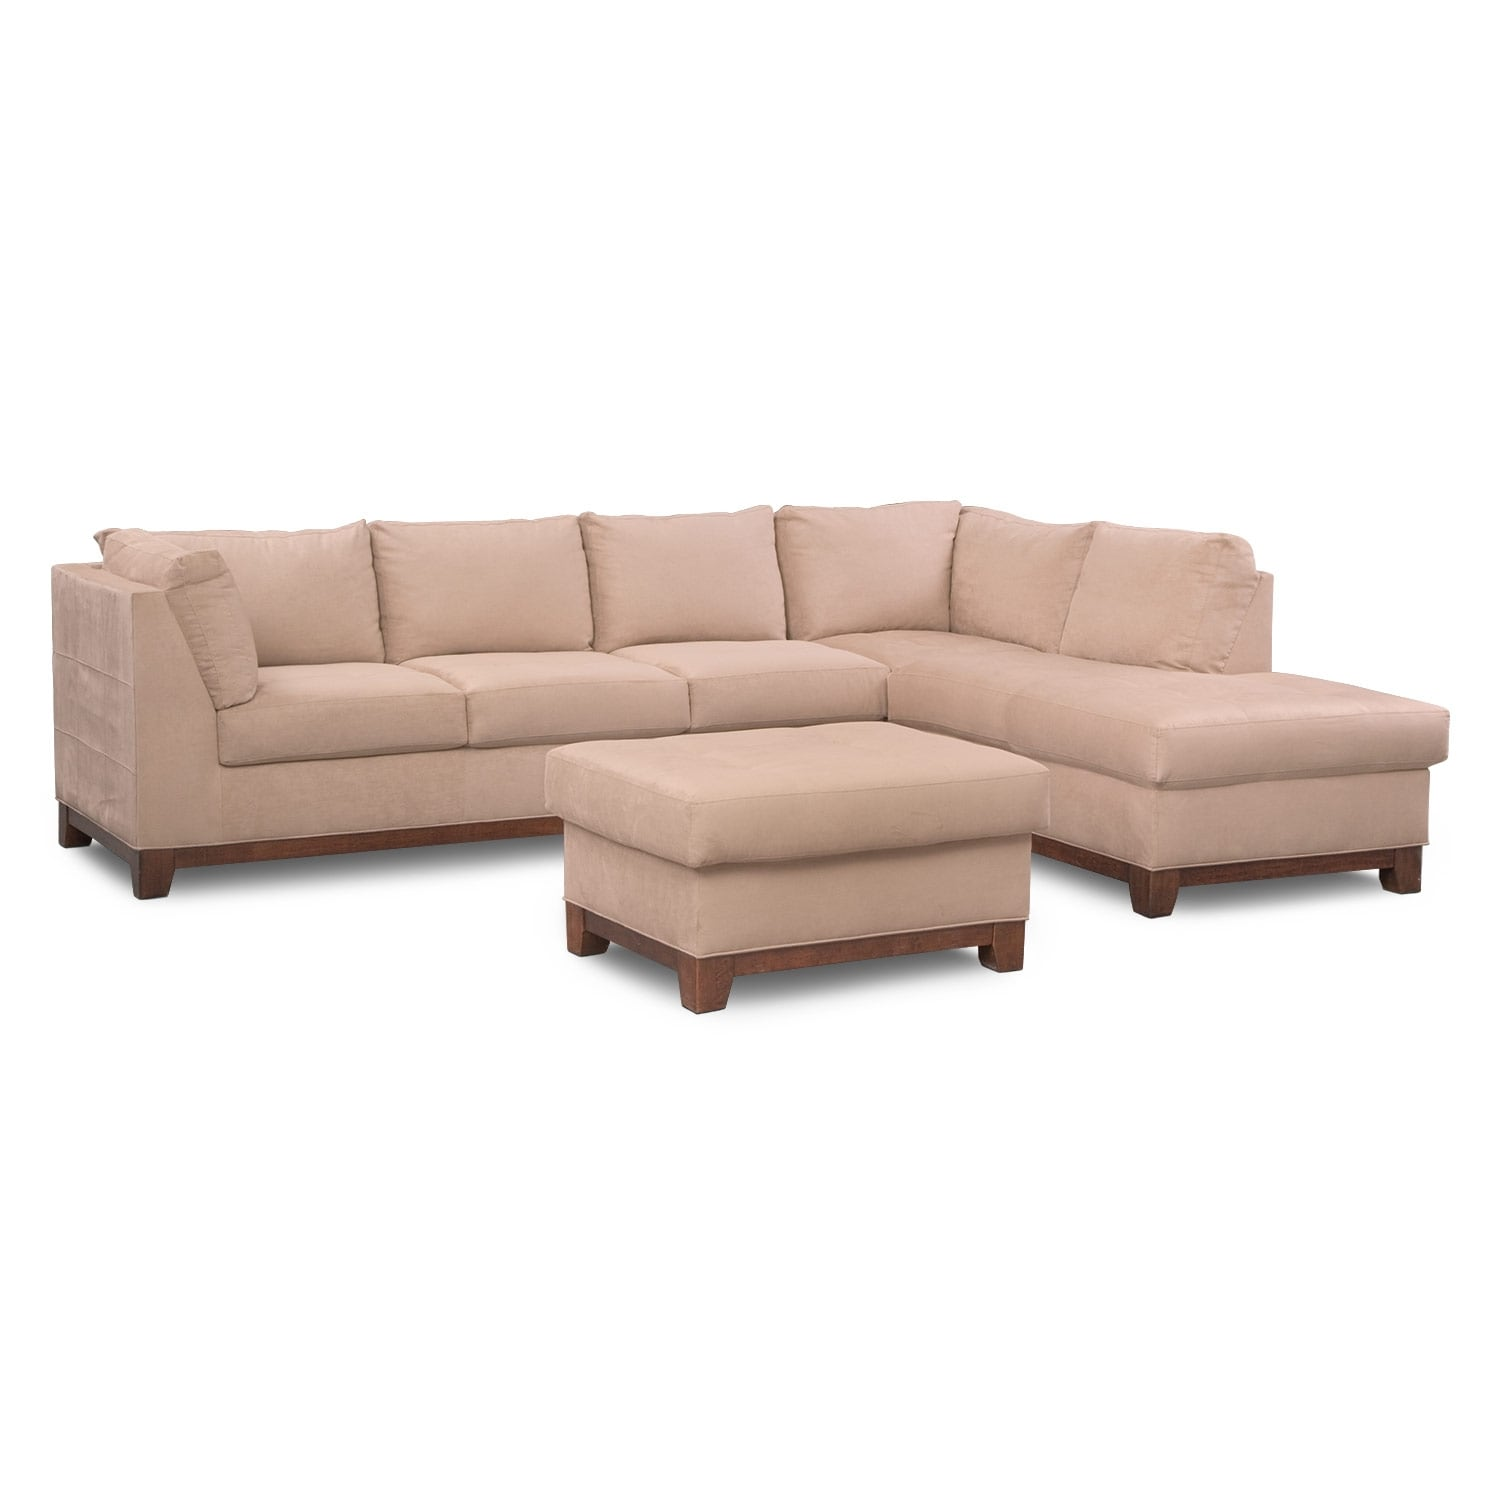 The Soho Sectional Collection - Cobblestone  sc 1 st  Value City Furniture : vcf sectional - Sectionals, Sofas & Couches